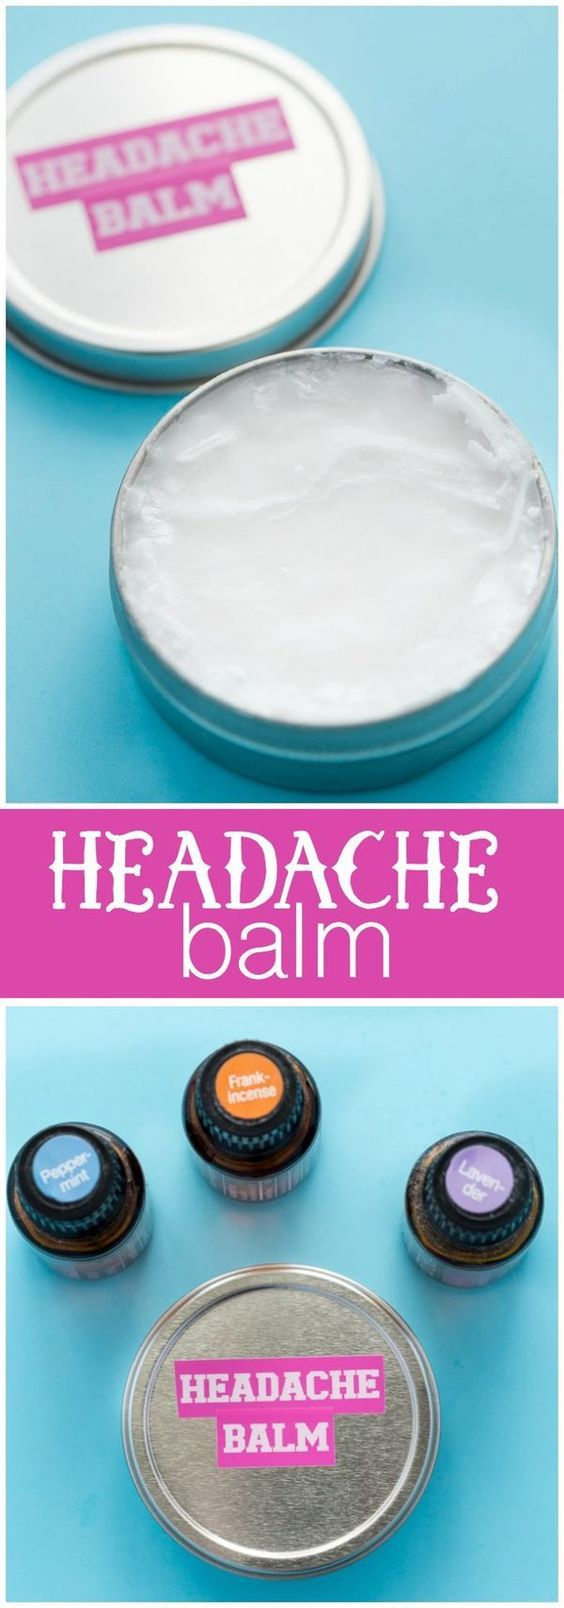 Headache Balm - Help soothe a headache with this simple DIY made with coconut oil, peppermint, lavender and frankincense essential oils. Try this to naturally relieve your migraine or headache!